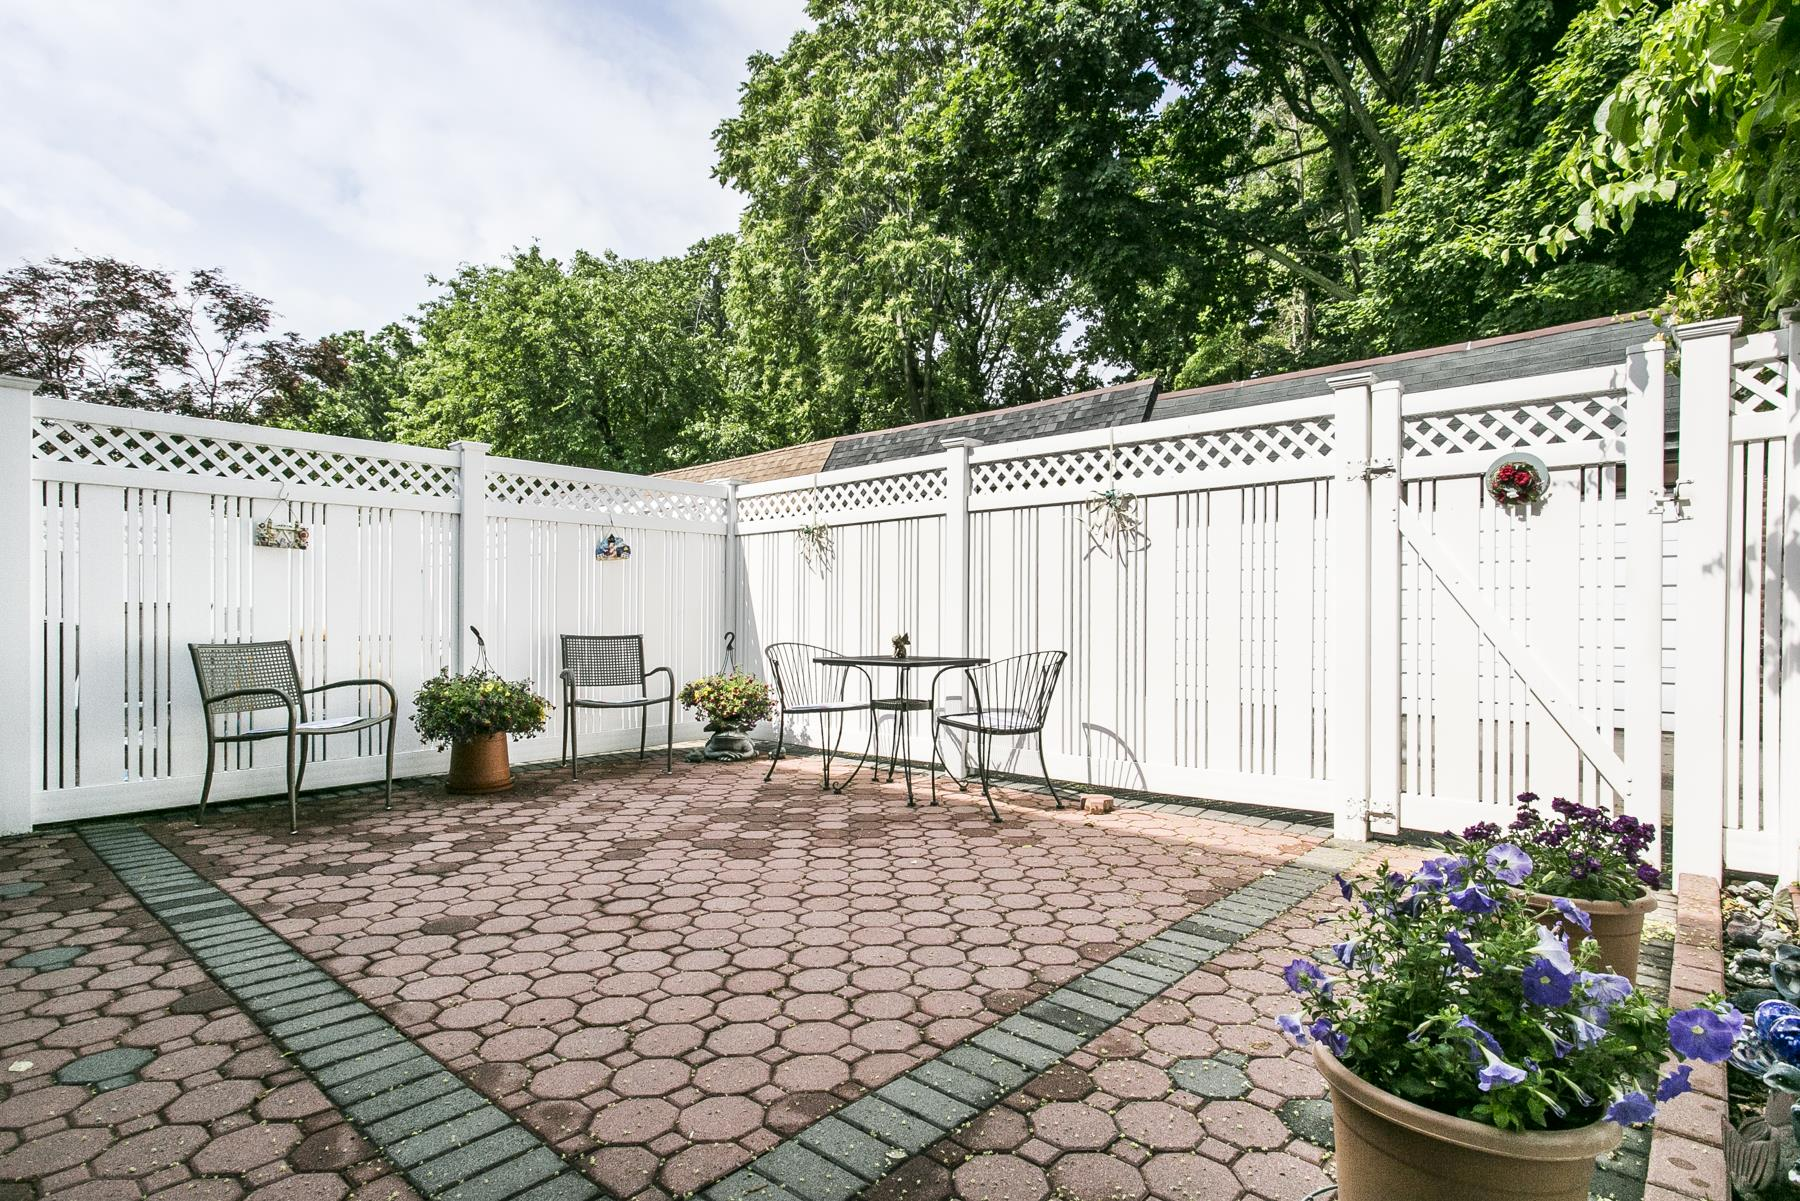 Additional photo for property listing at 67-54 SELFRIDGE STREET FOREST HILLS, NY  Forest Hills, New York 11375 United States